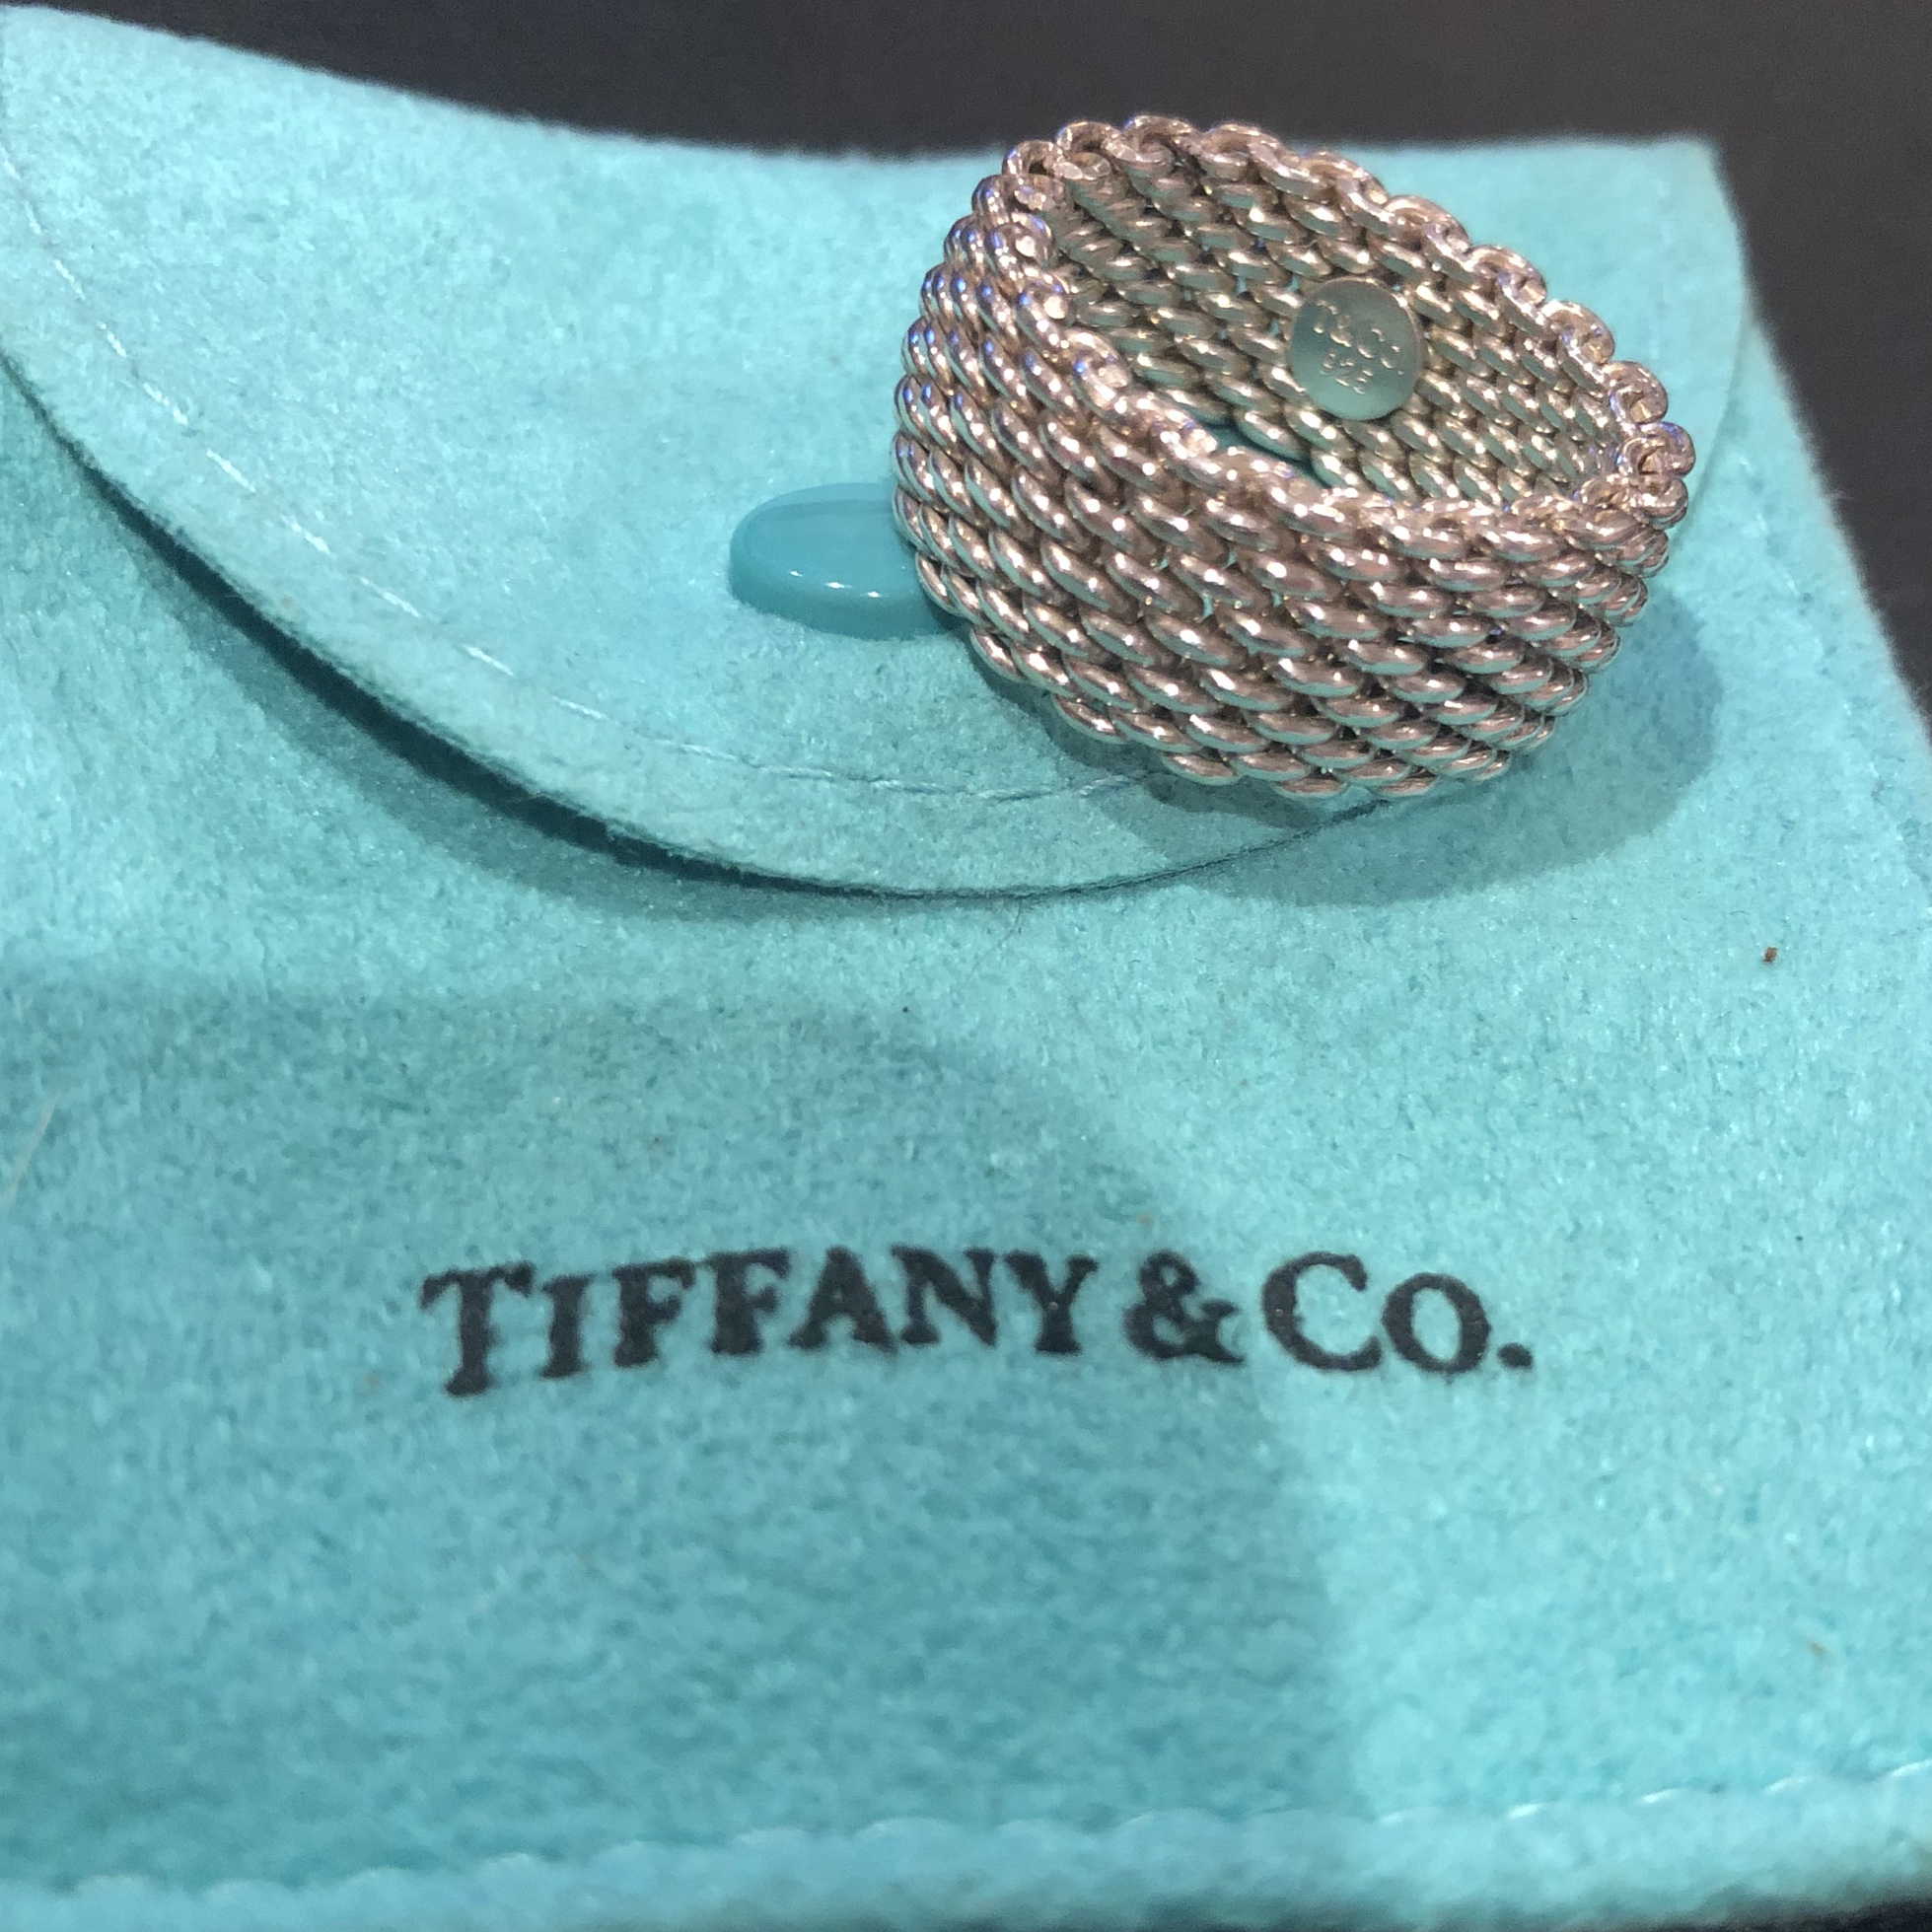 8e99491a77503 Tiffany & Co. 925 sterling silver mesh ring. Size 7.... - Depop